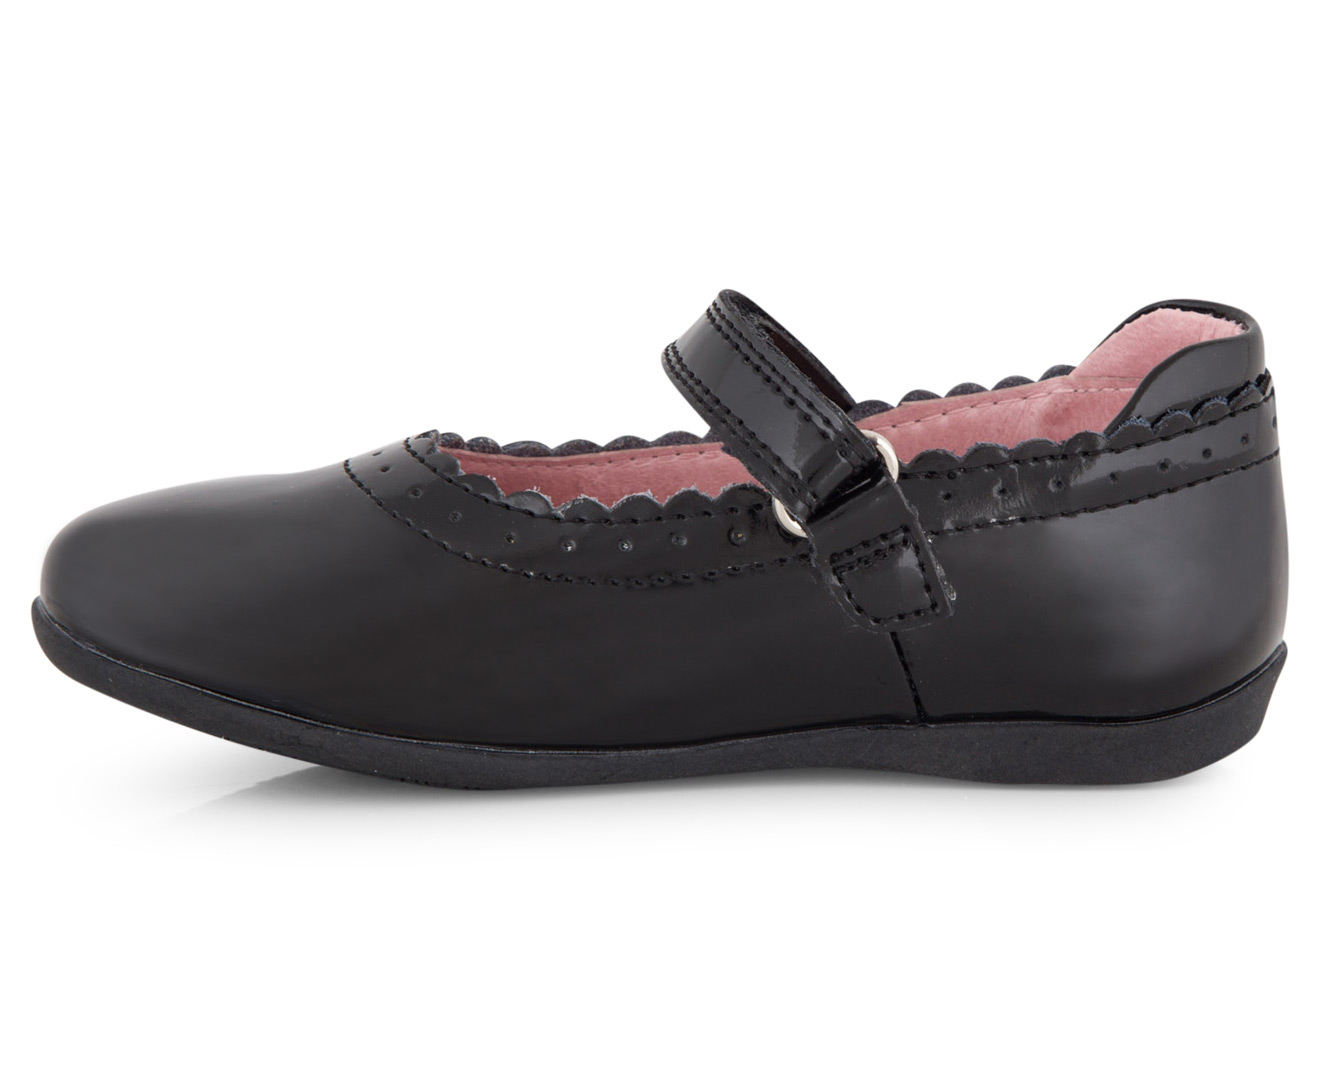 Clarks Baby St Shoes